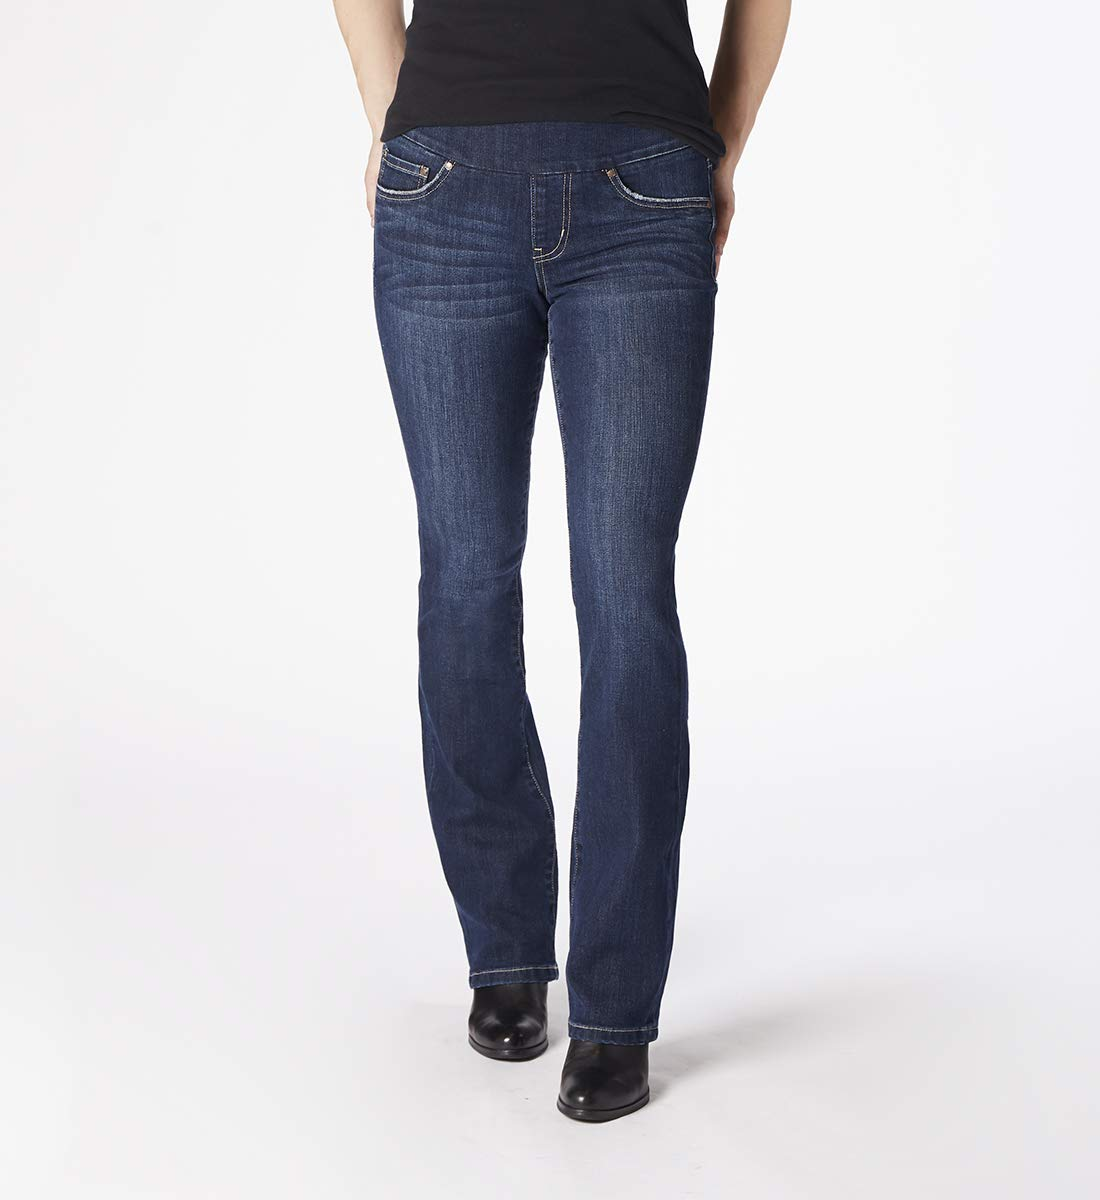 Jag Jeans Women's Paley Boot Pull on Jean, Blue Shadow, 16 by Jag Jeans